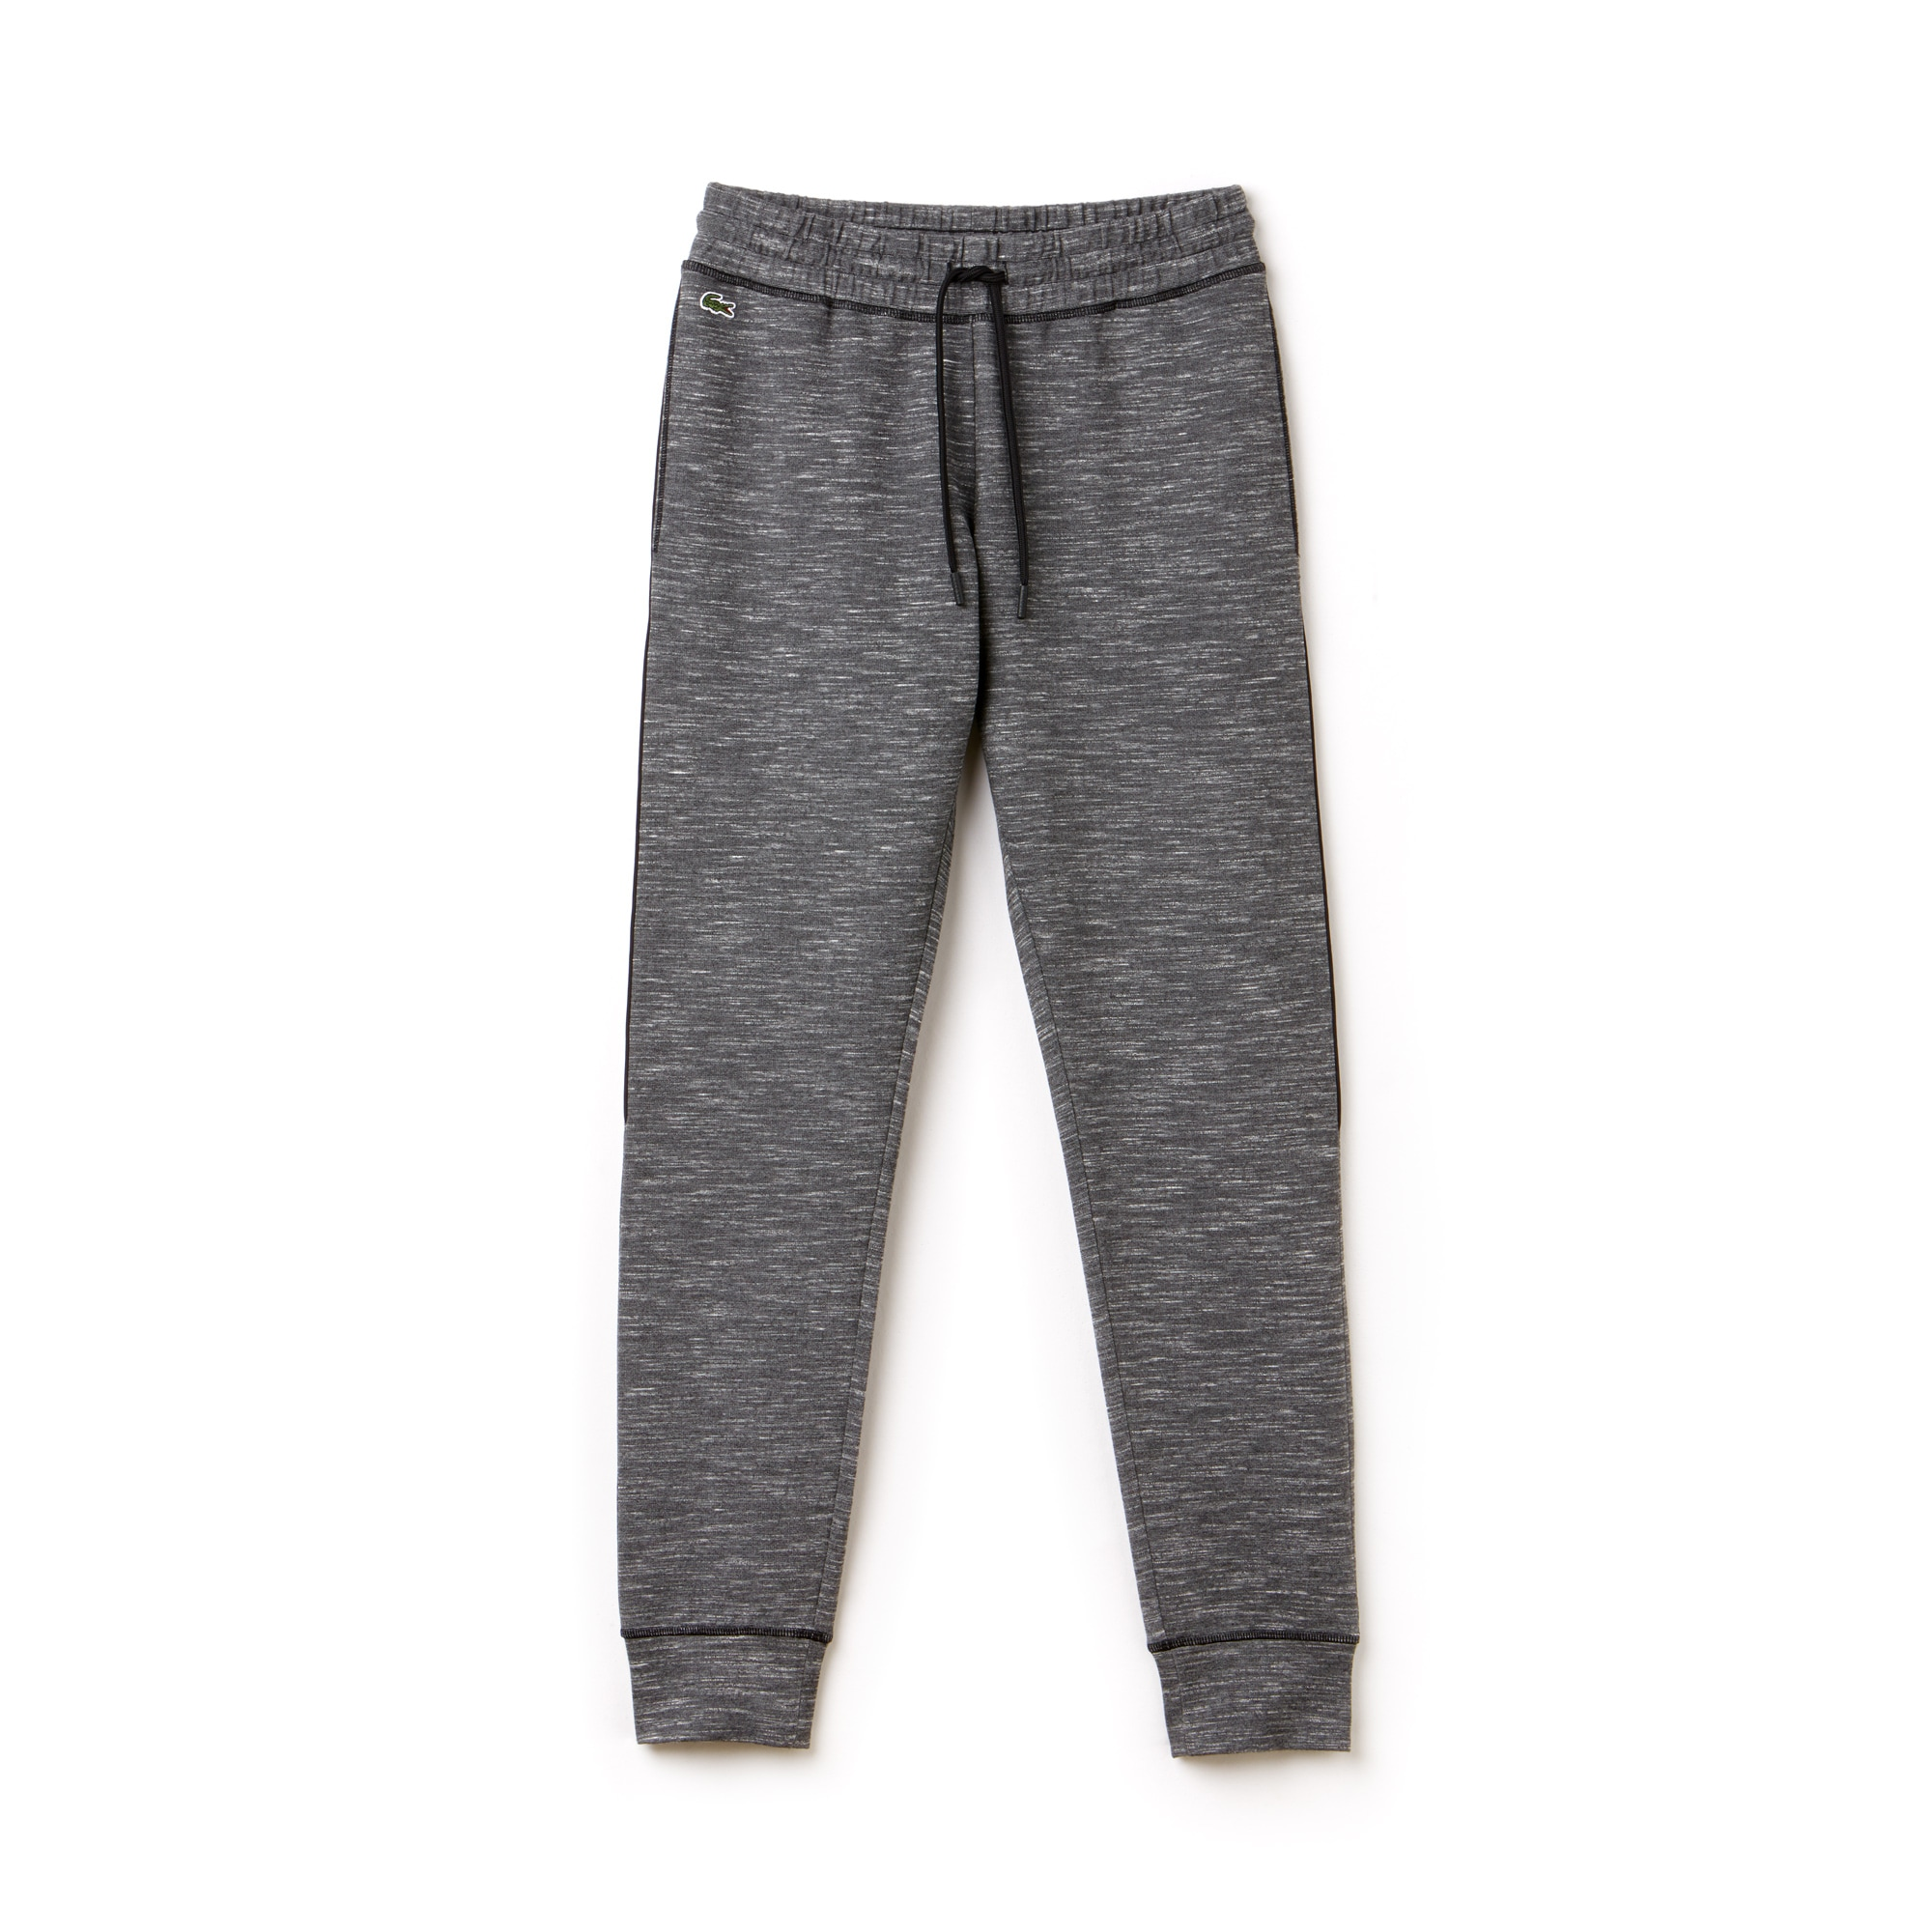 Women's SPORT Stretch Flecked Urban Tennis Sweatpants